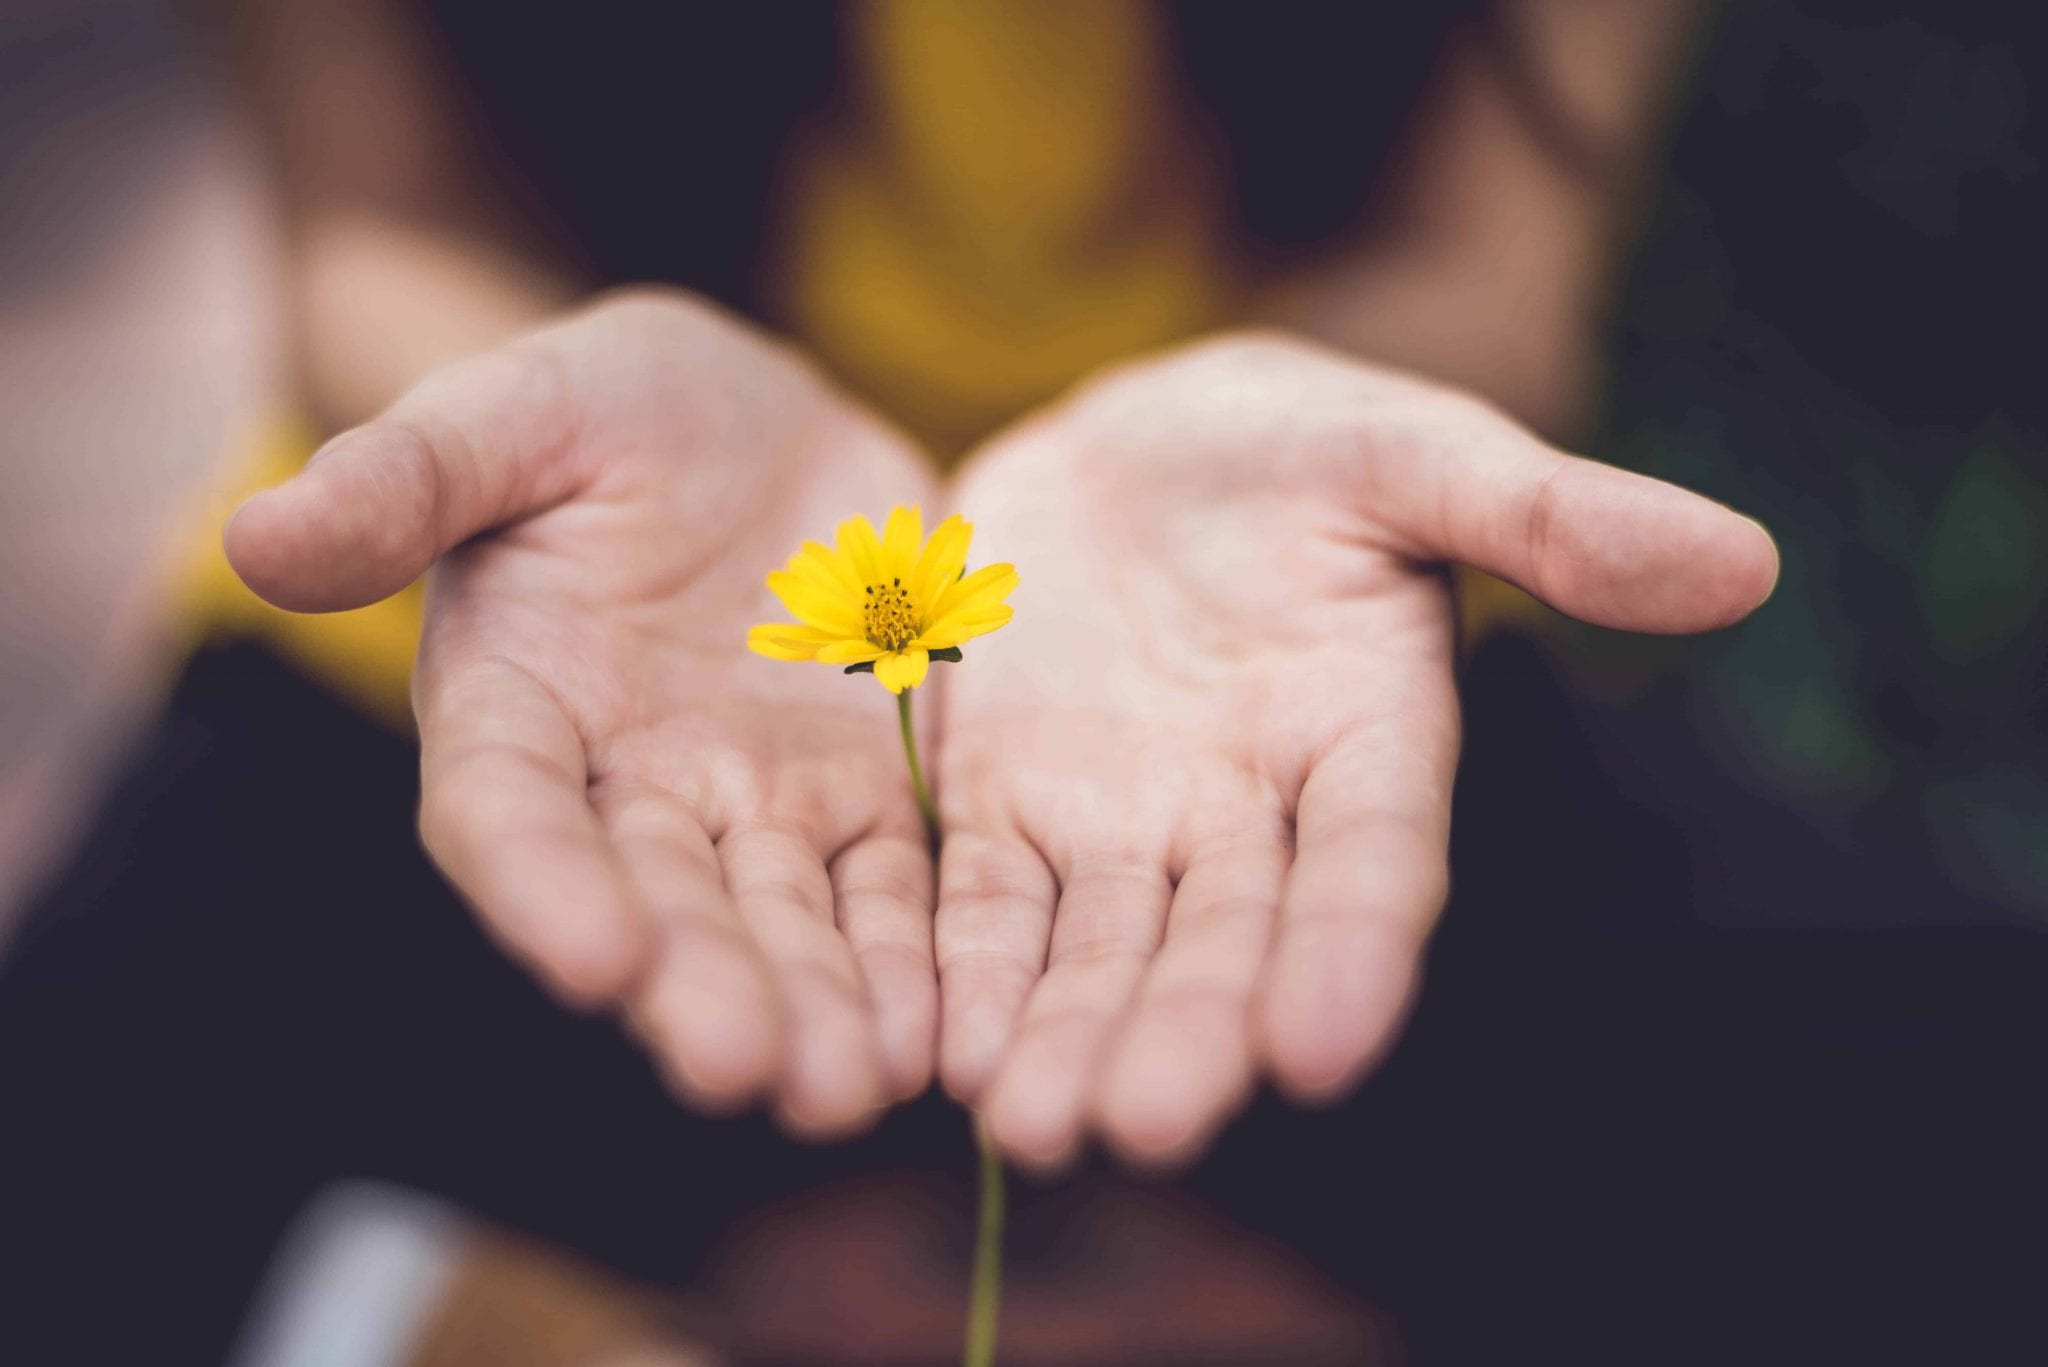 11 Inspirational Bible Verses About Giving Generously